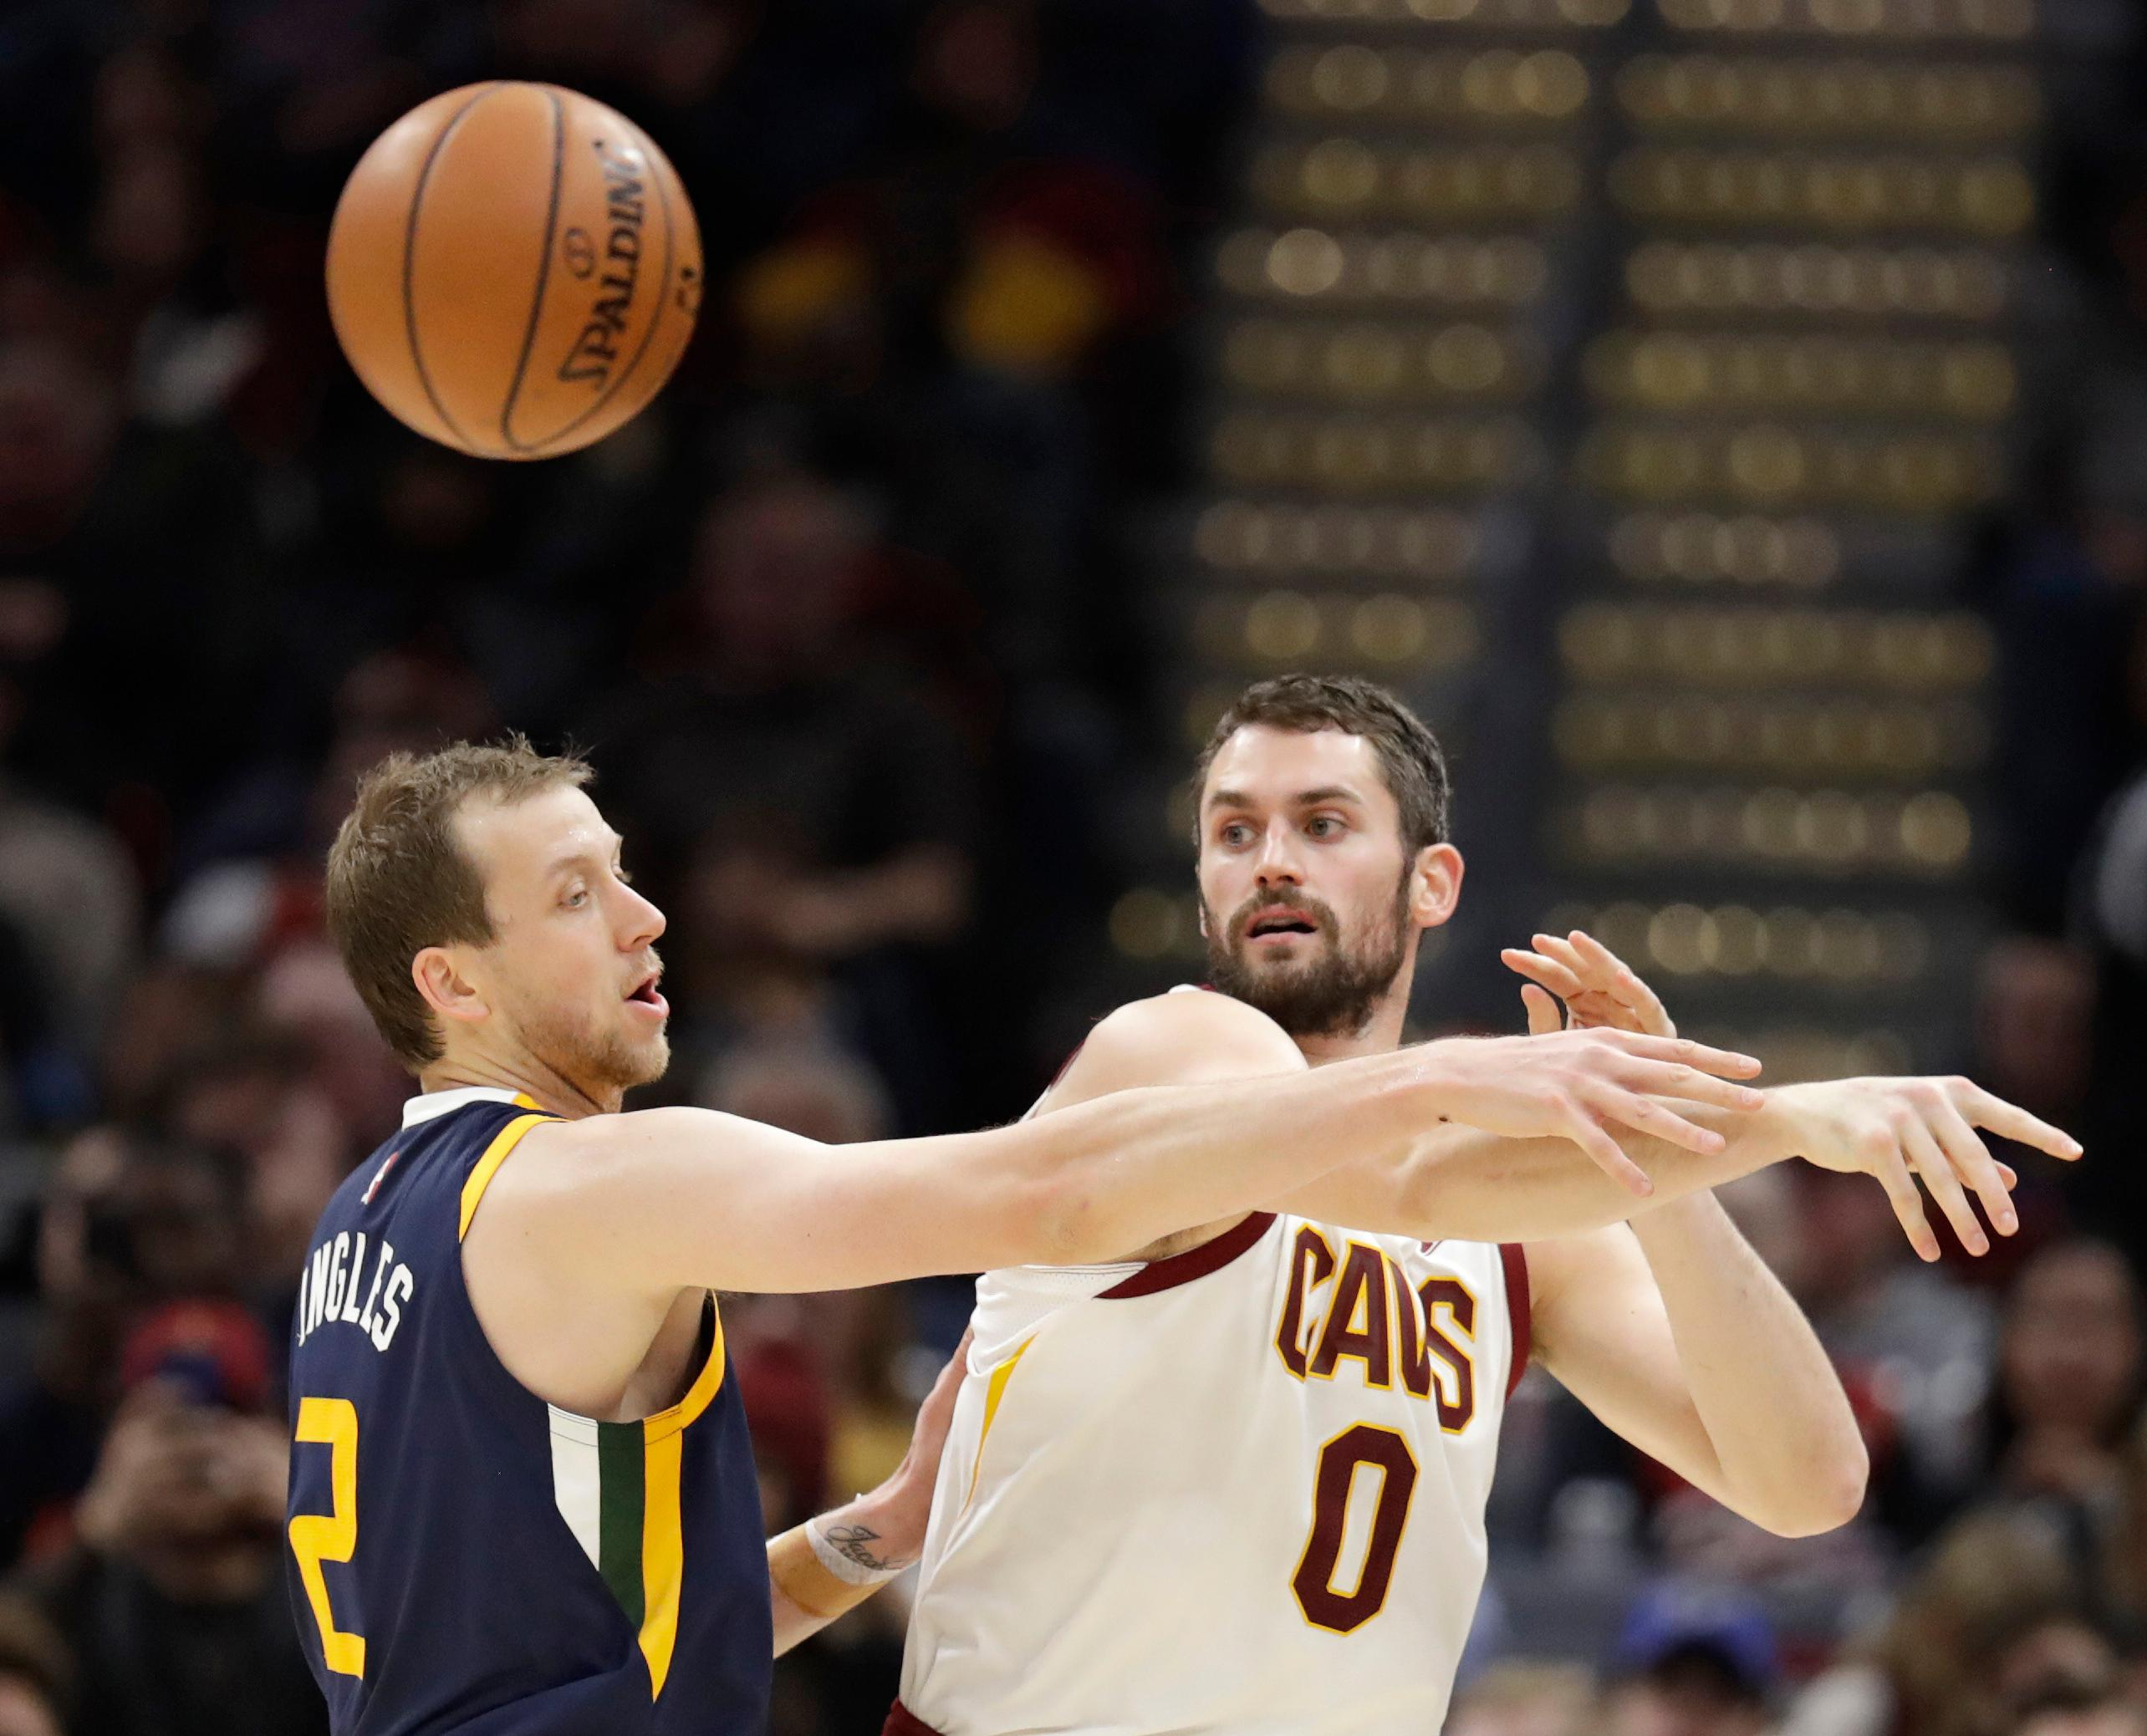 Cleveland Cavaliers' Kevin Love (0) passes against Utah Jazz's Joe Ingles (2), from Australia, in the first half of an NBA basketball game, Saturday, Dec. 16, 2017, in Cleveland. (AP Photo/Tony Dejak)